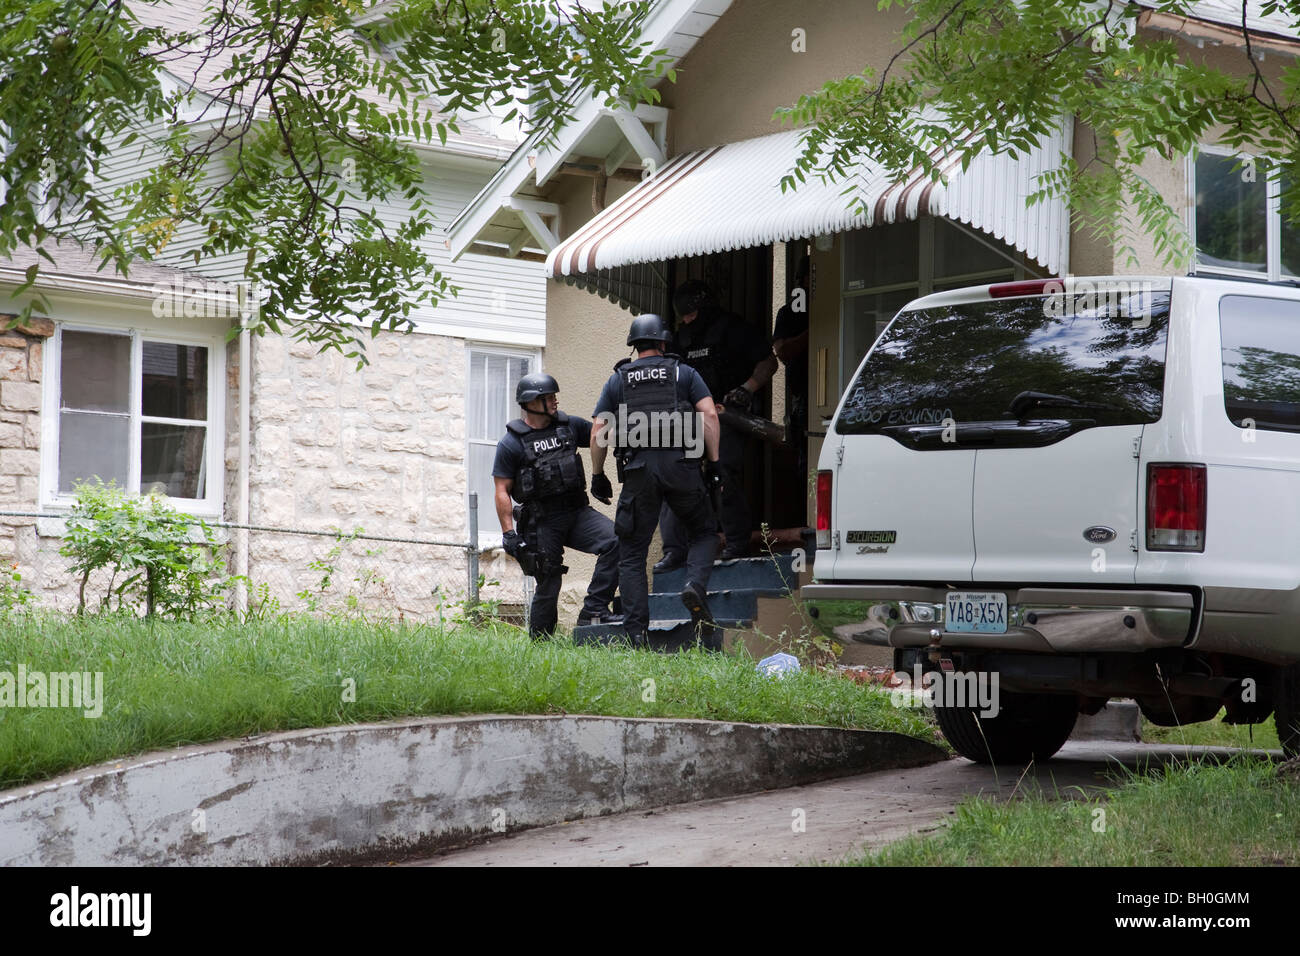 Police officers making entry to serve high-risk drug related search warrant. Street Narcotics Unit tactical squad, - Stock Image